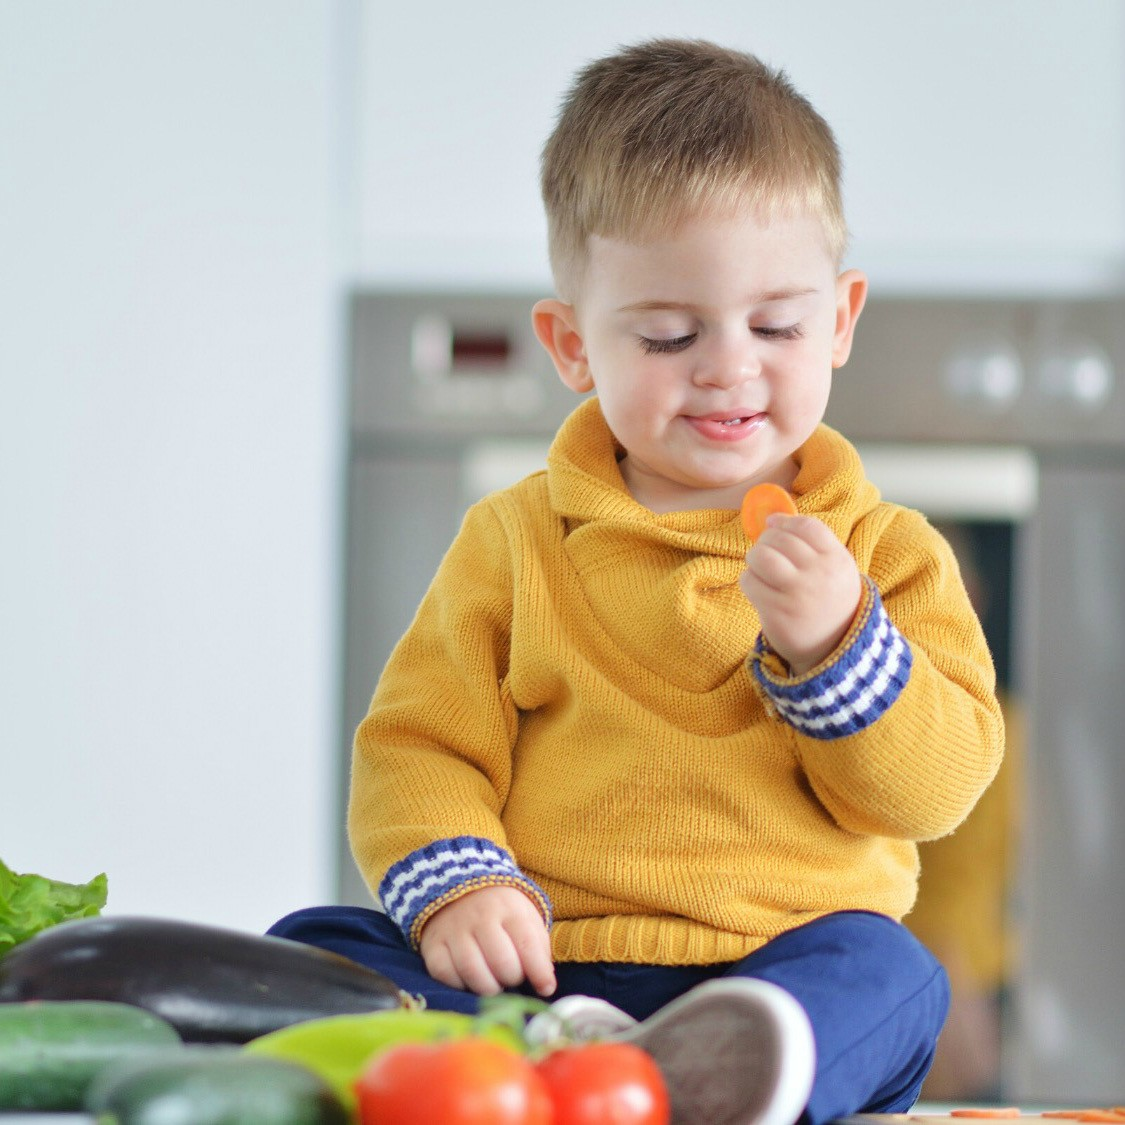 An image of a toddler eating carrots.